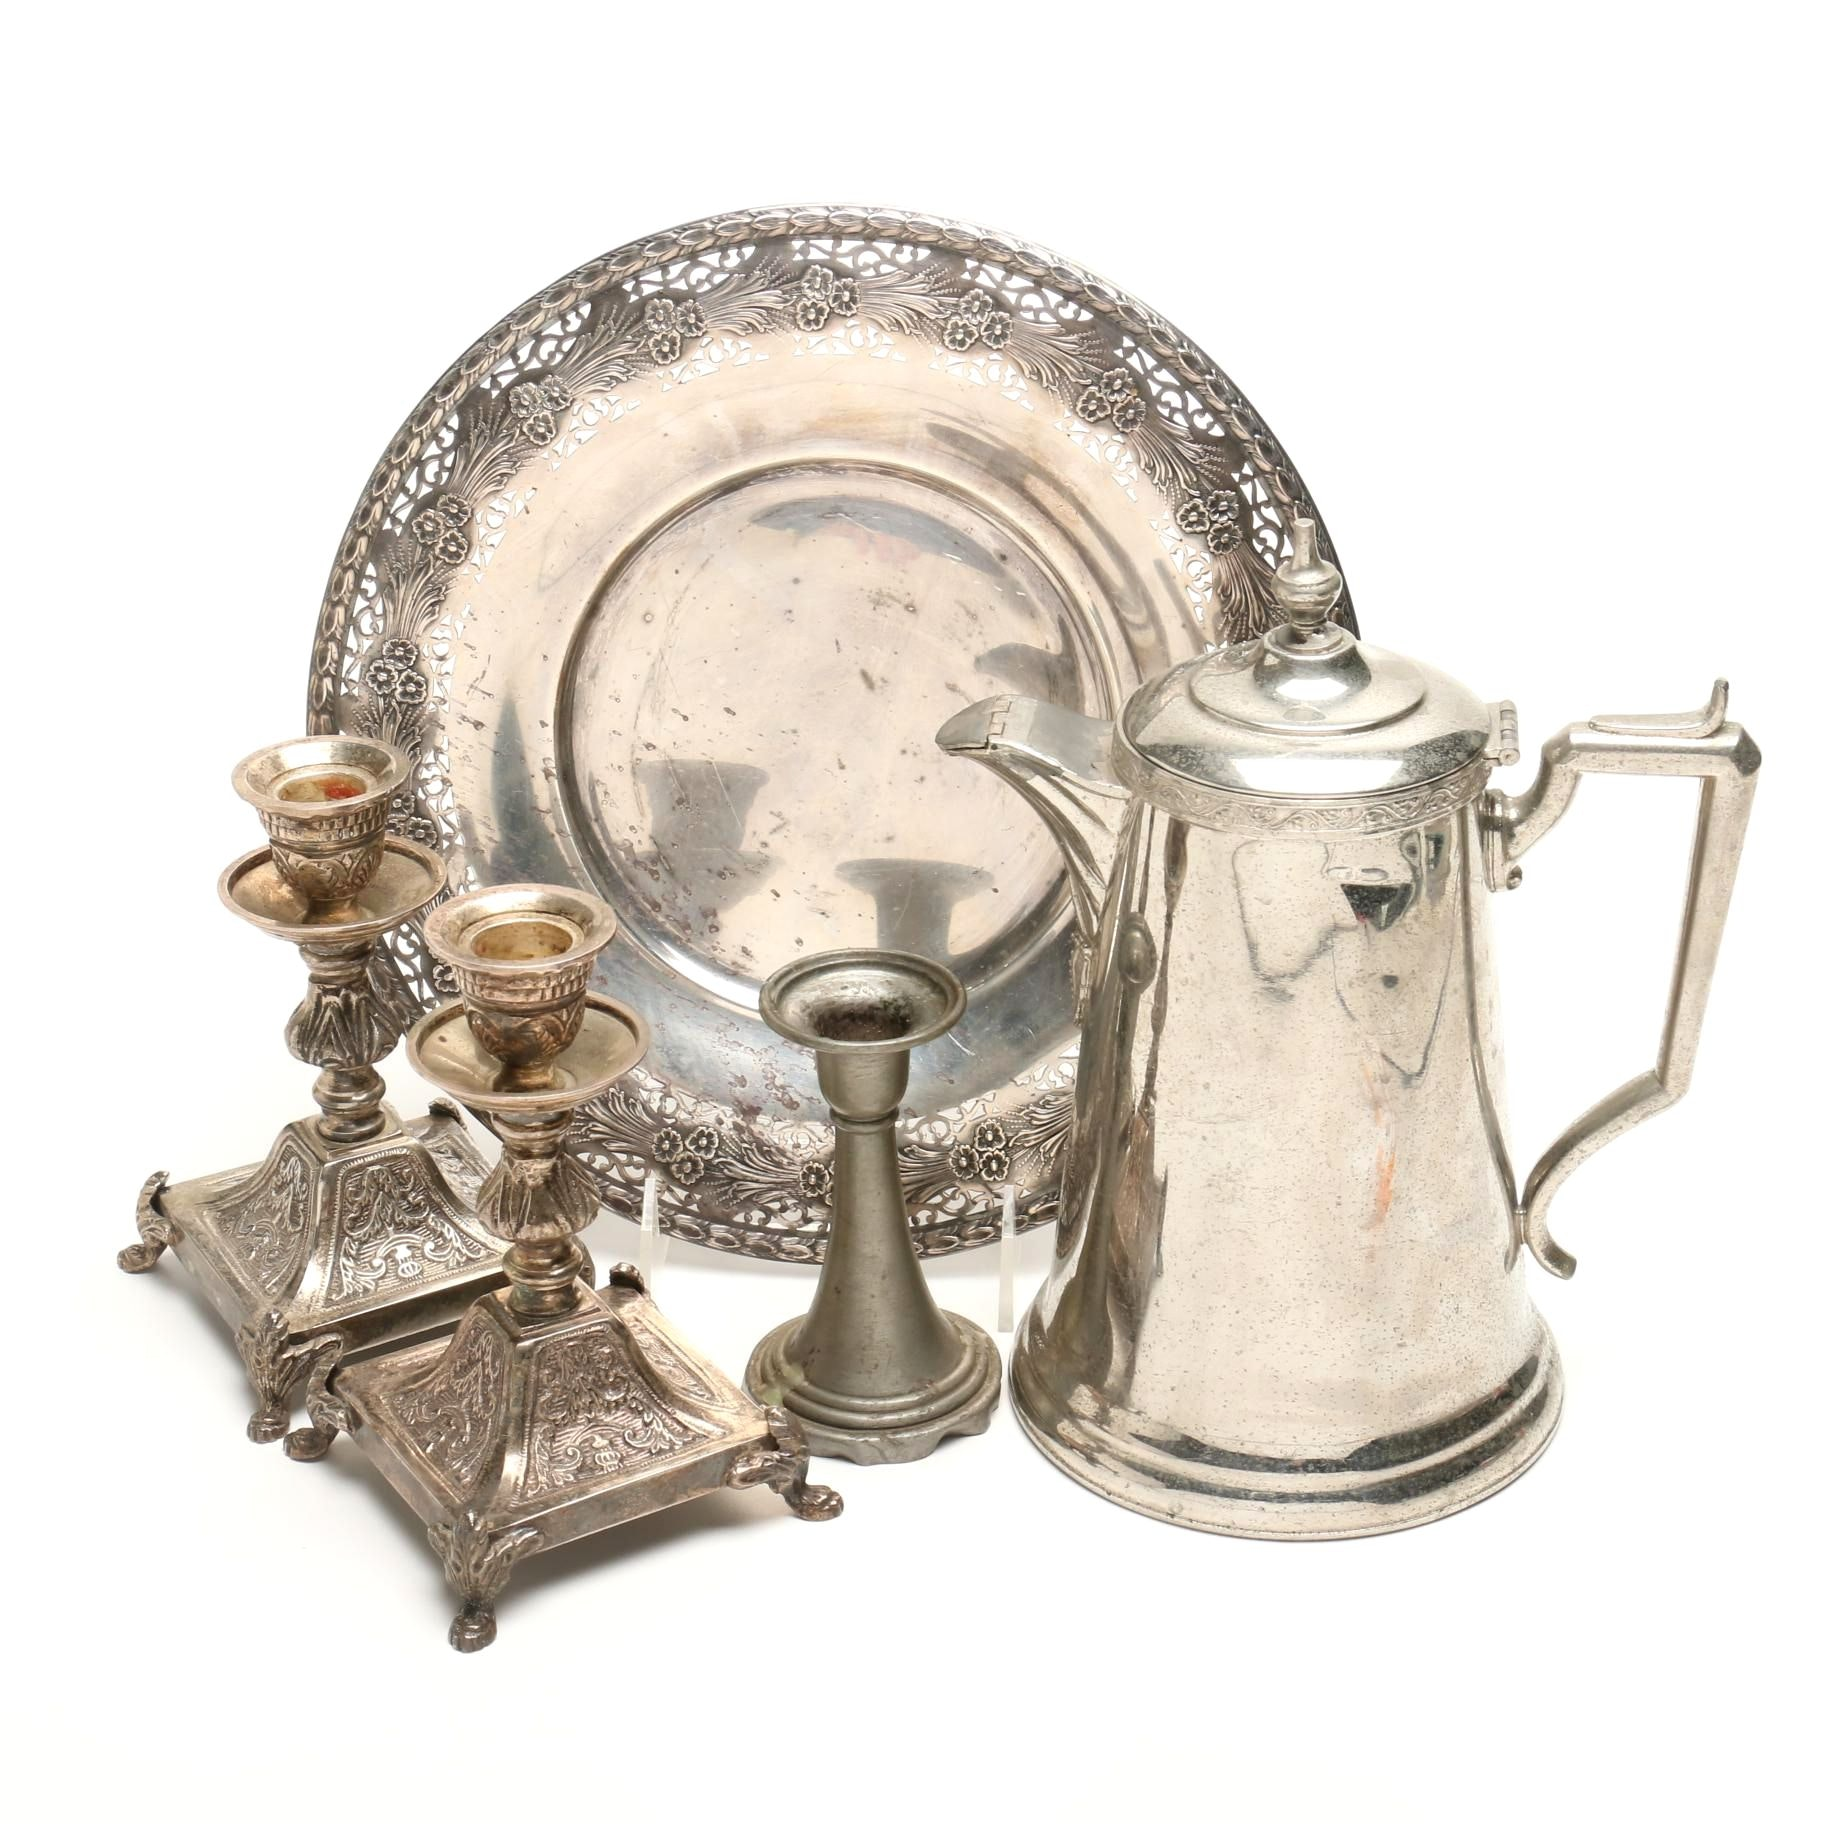 Silver Plate and Pewter Tableware Including Wm. Rogers